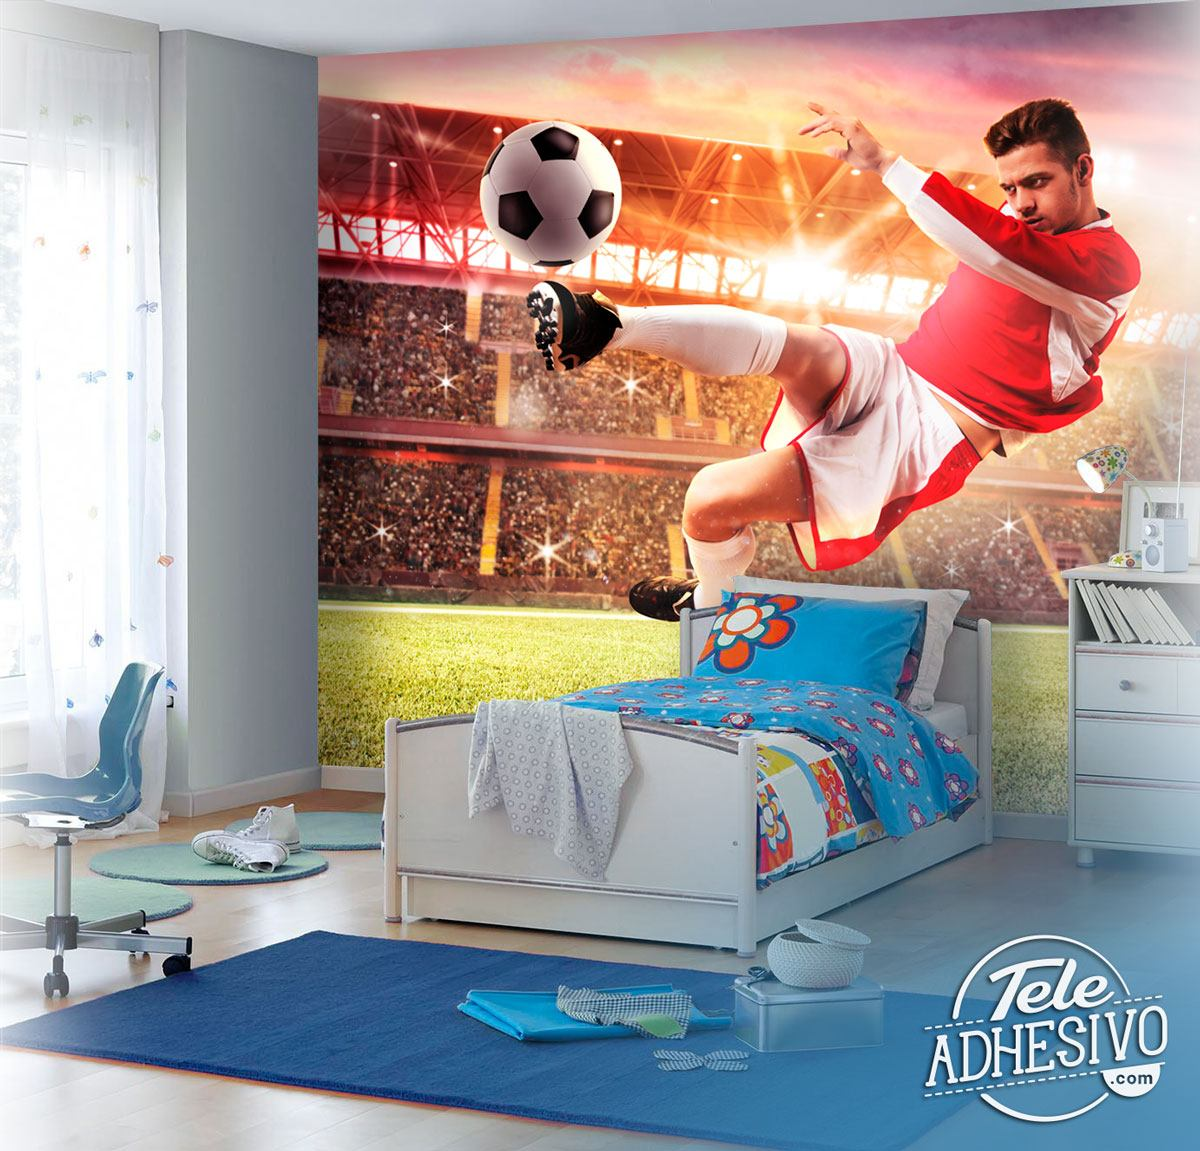 Wall Murals: Spectacular finish